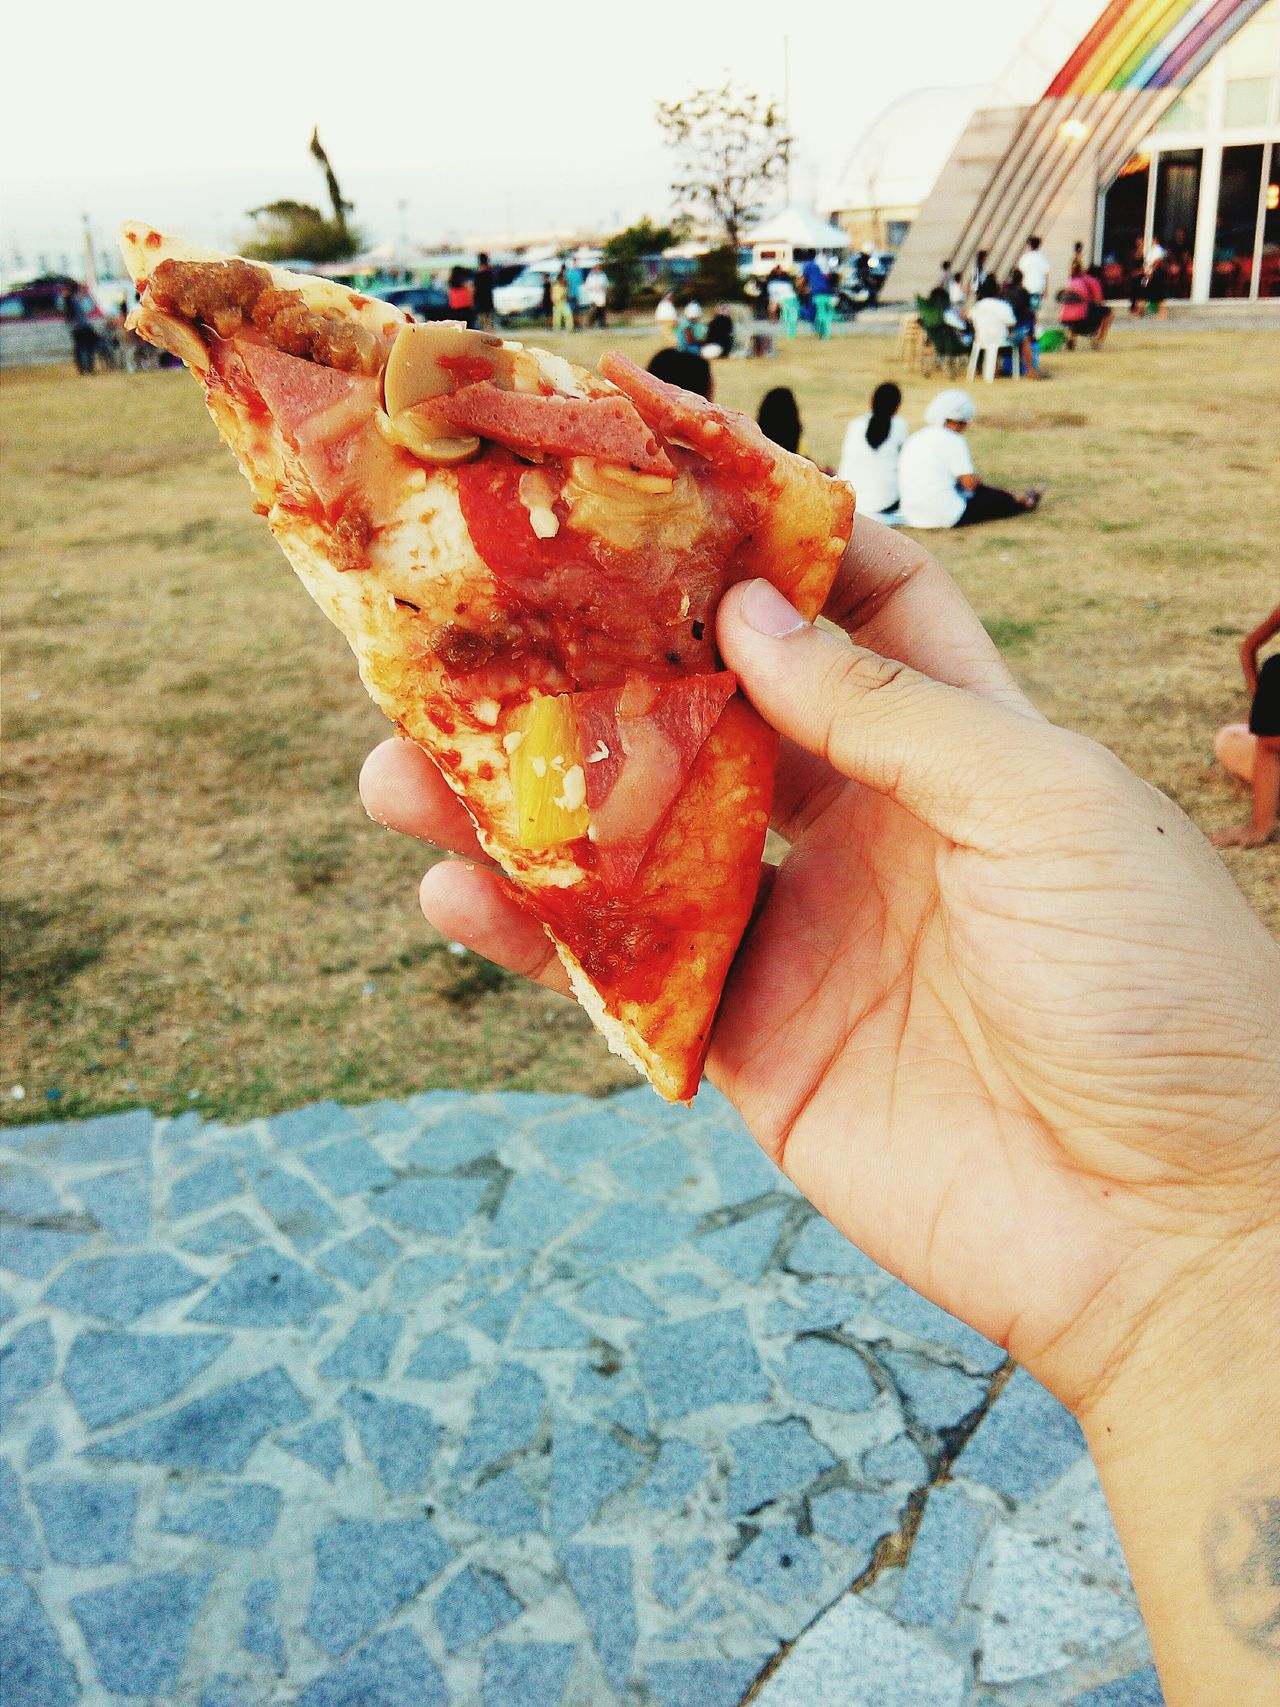 Pizza For Life 🍕 Street Food Worldwide Pizza <3 Pizza For Life Philippines El Shaddai Fun